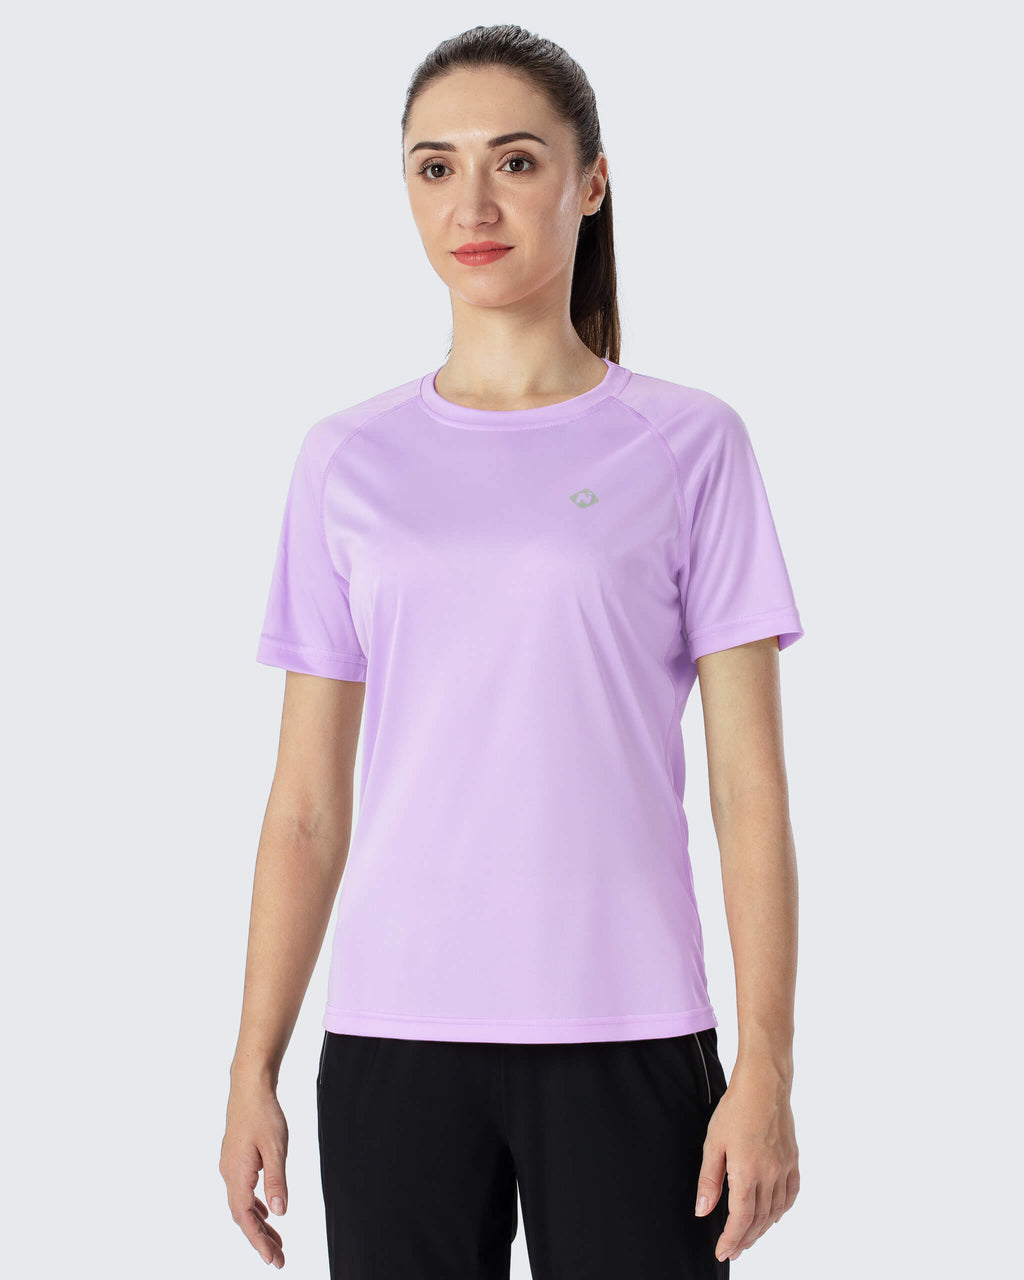 UPF 50+ Short Sleeve Shirt